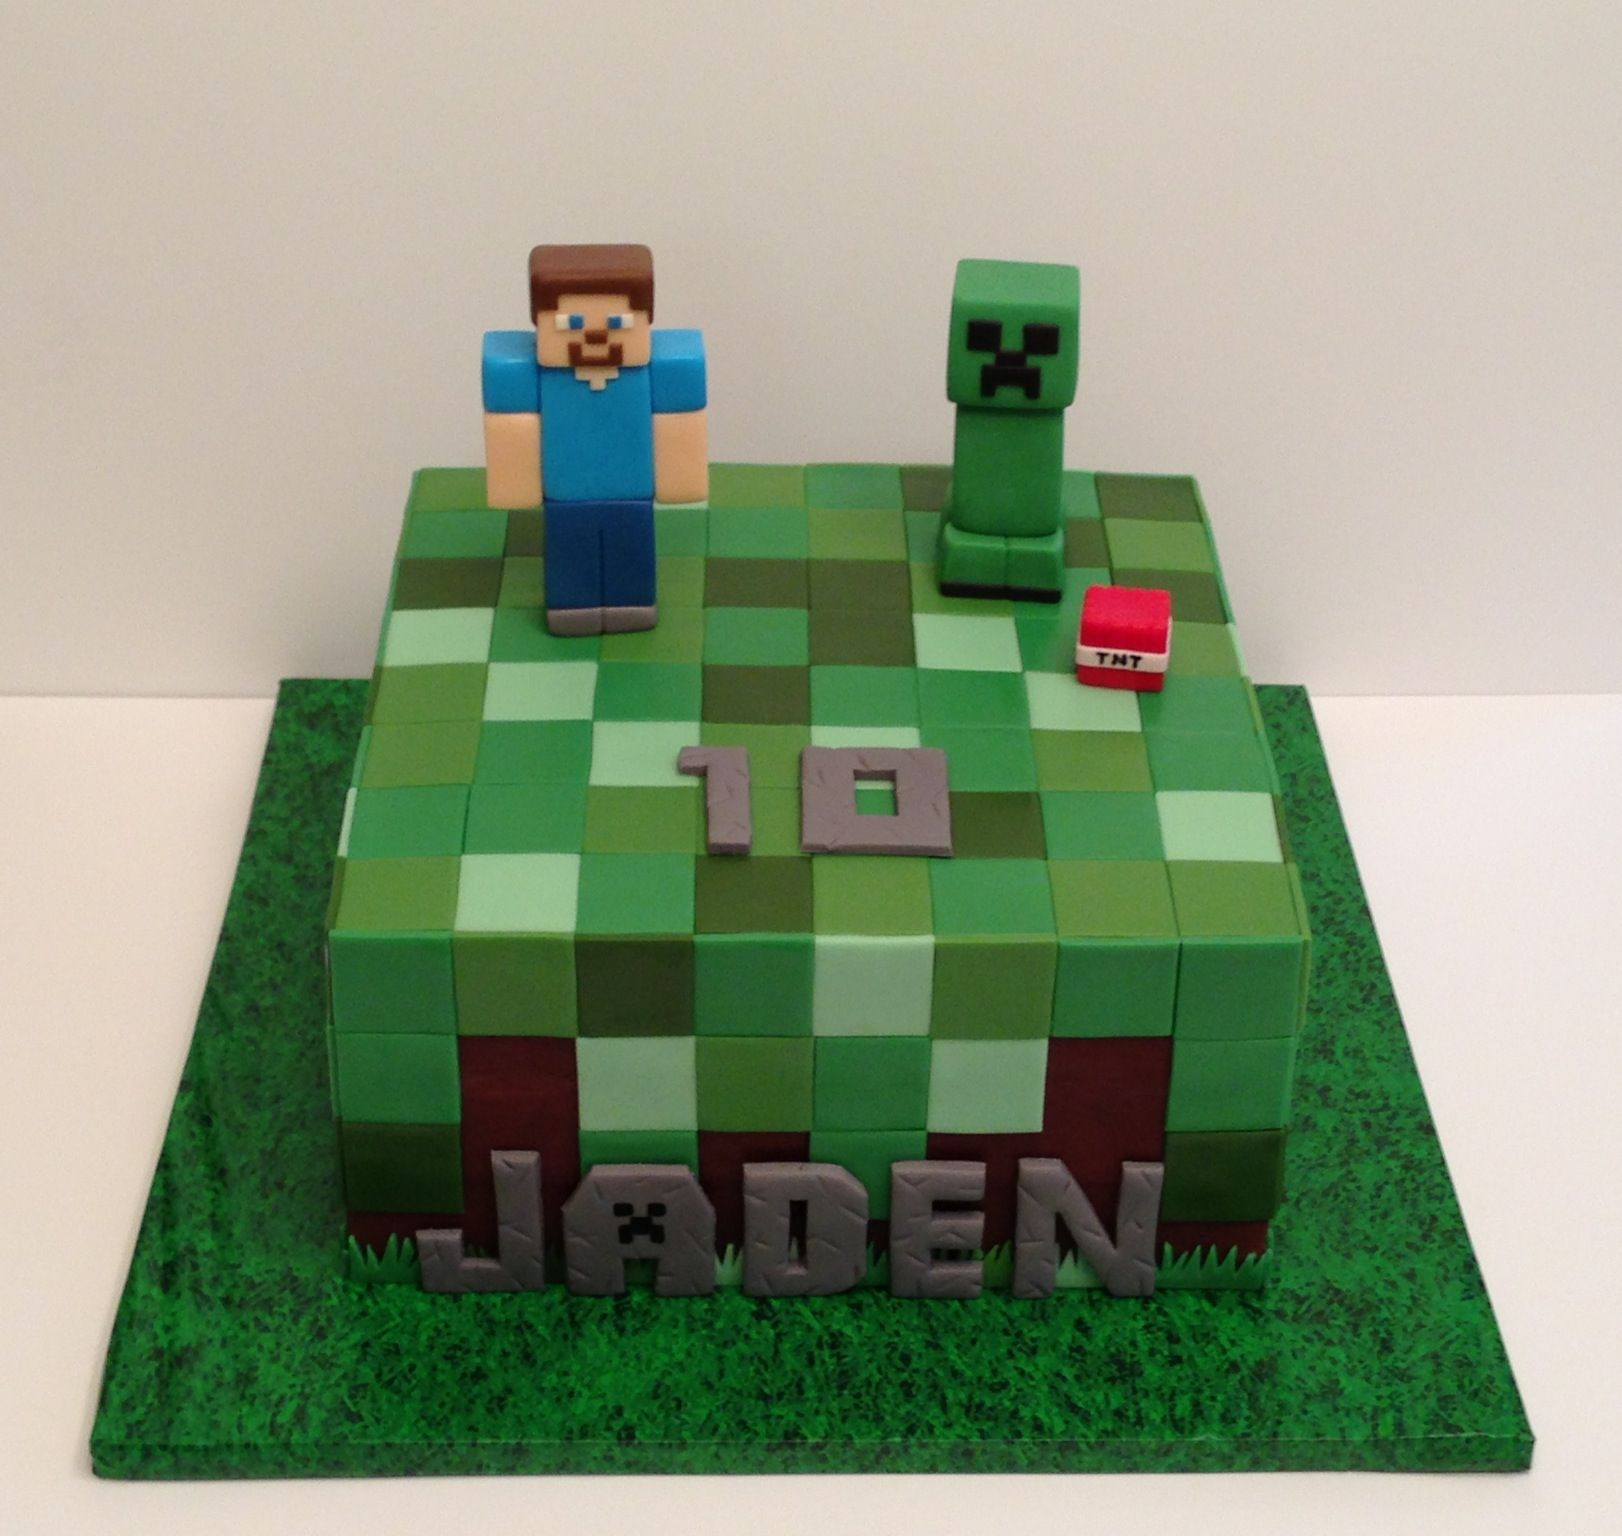 Minecraft Cake With Steve And Creeper 8 Quot Square With